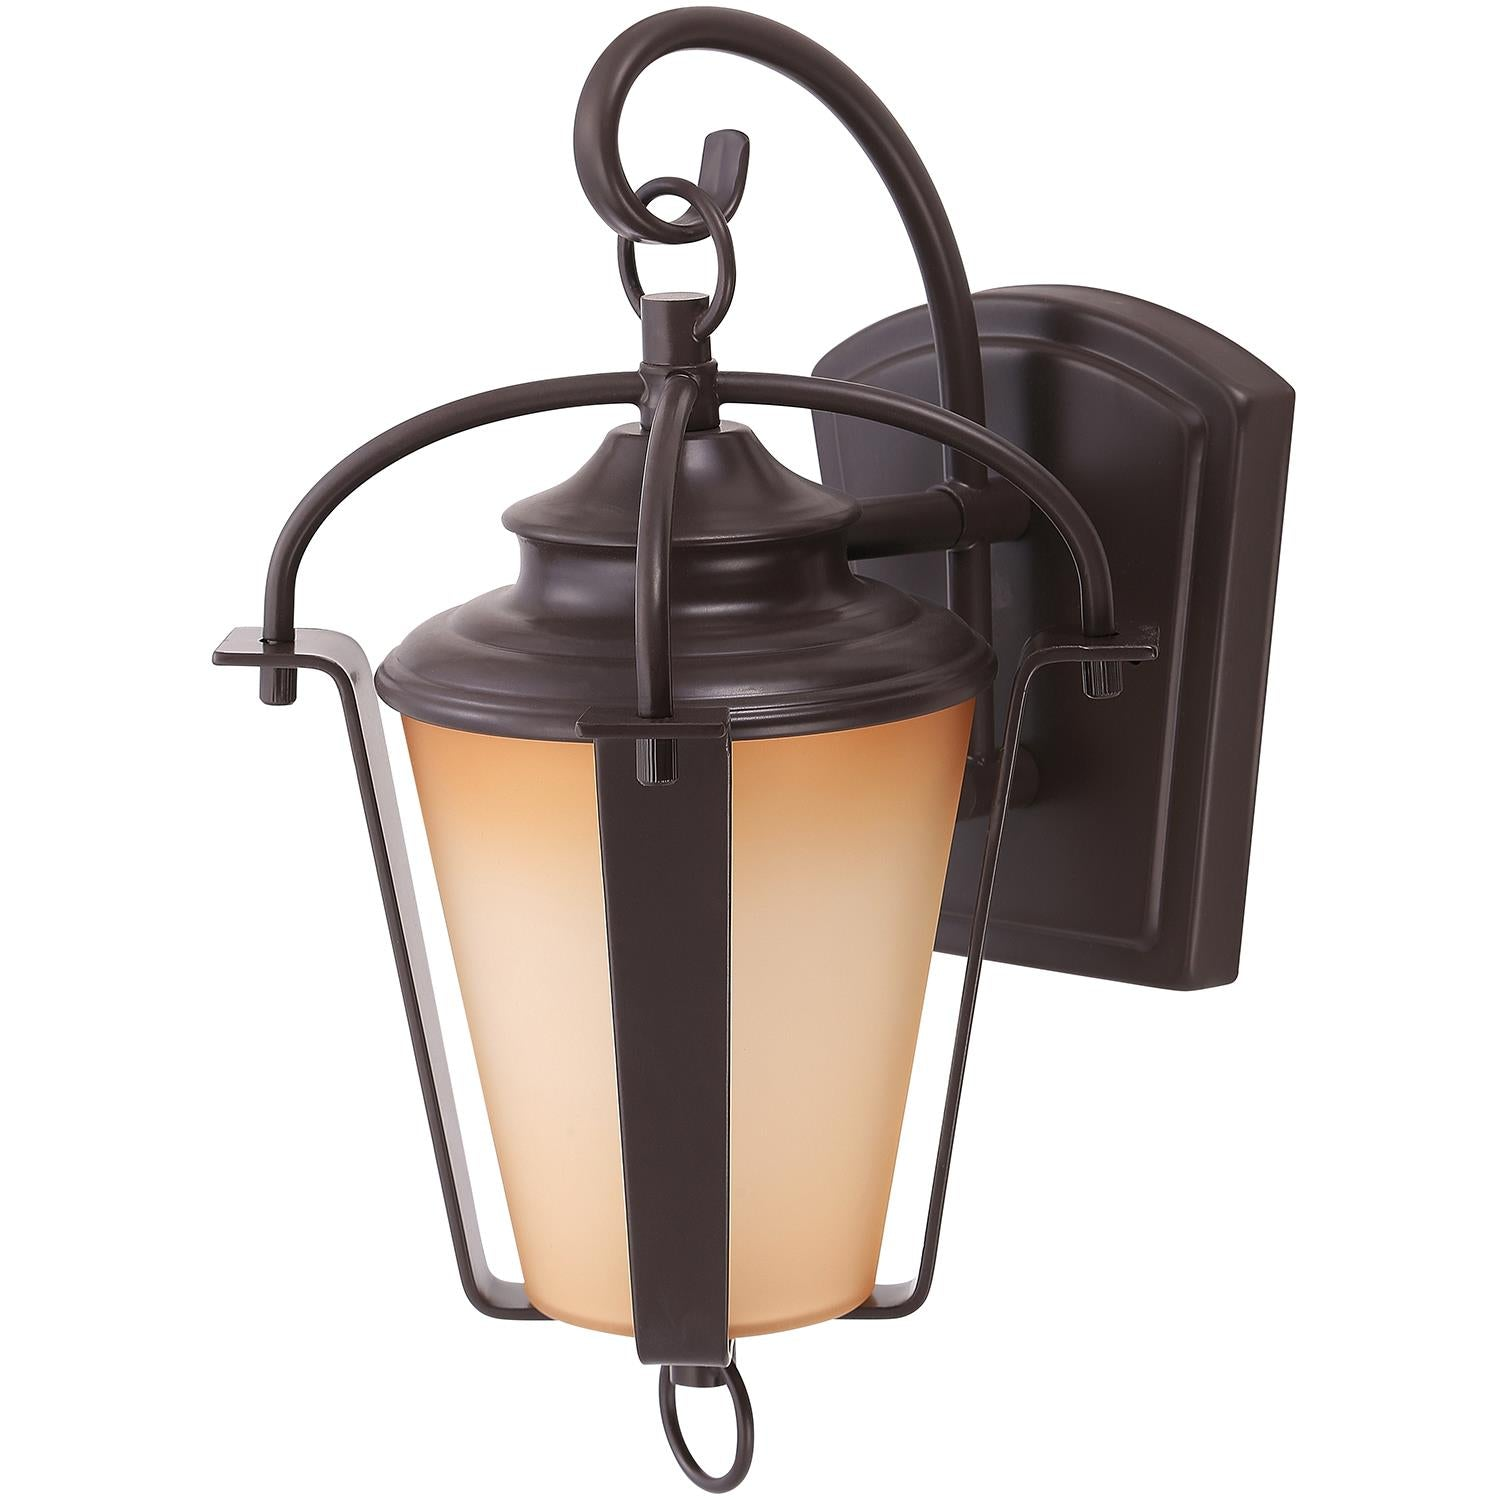 SUNLITE 12w LED Wall Mounted Antique style Lantern - 3000K